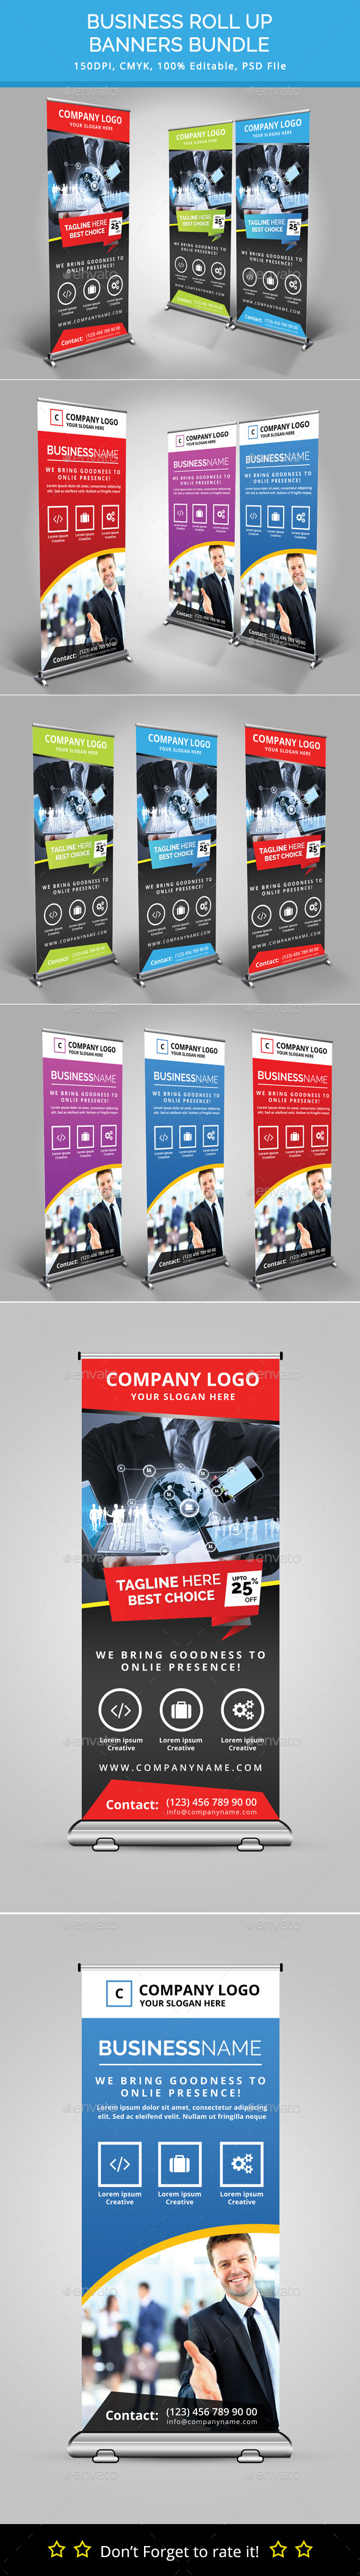 GraphicRiver Bundle of 2 Rollup Banners 11770364